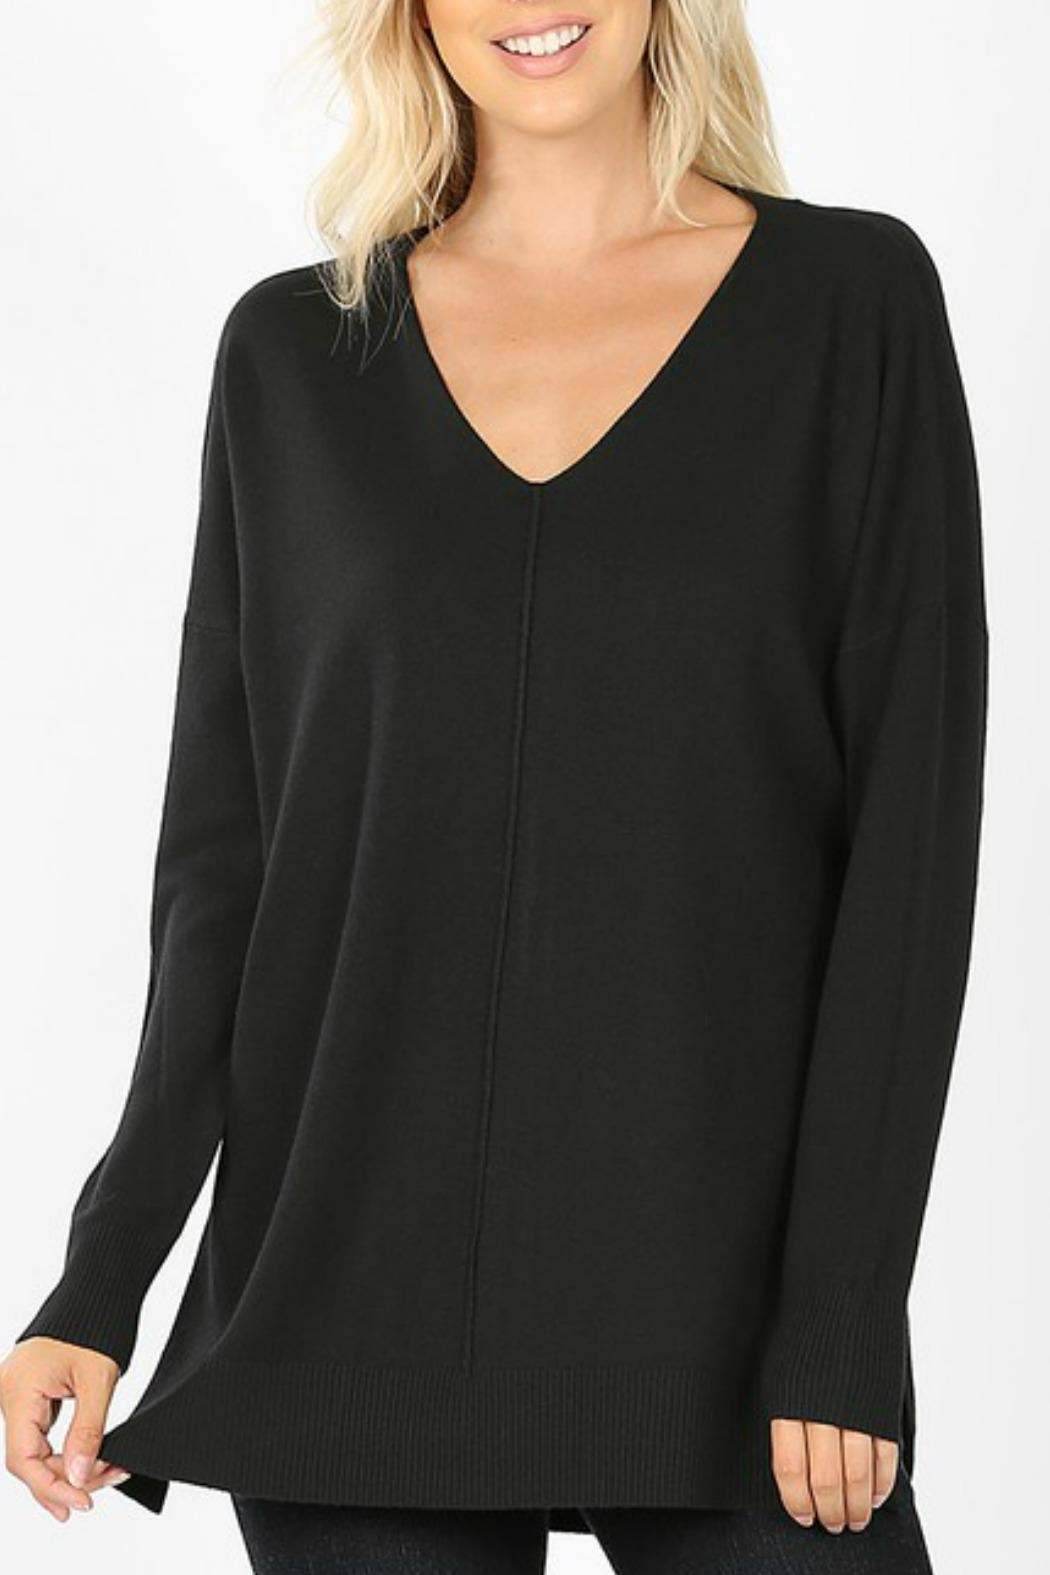 Zenana Outfitters Mellie V-Neck Sweater - Front Cropped Image